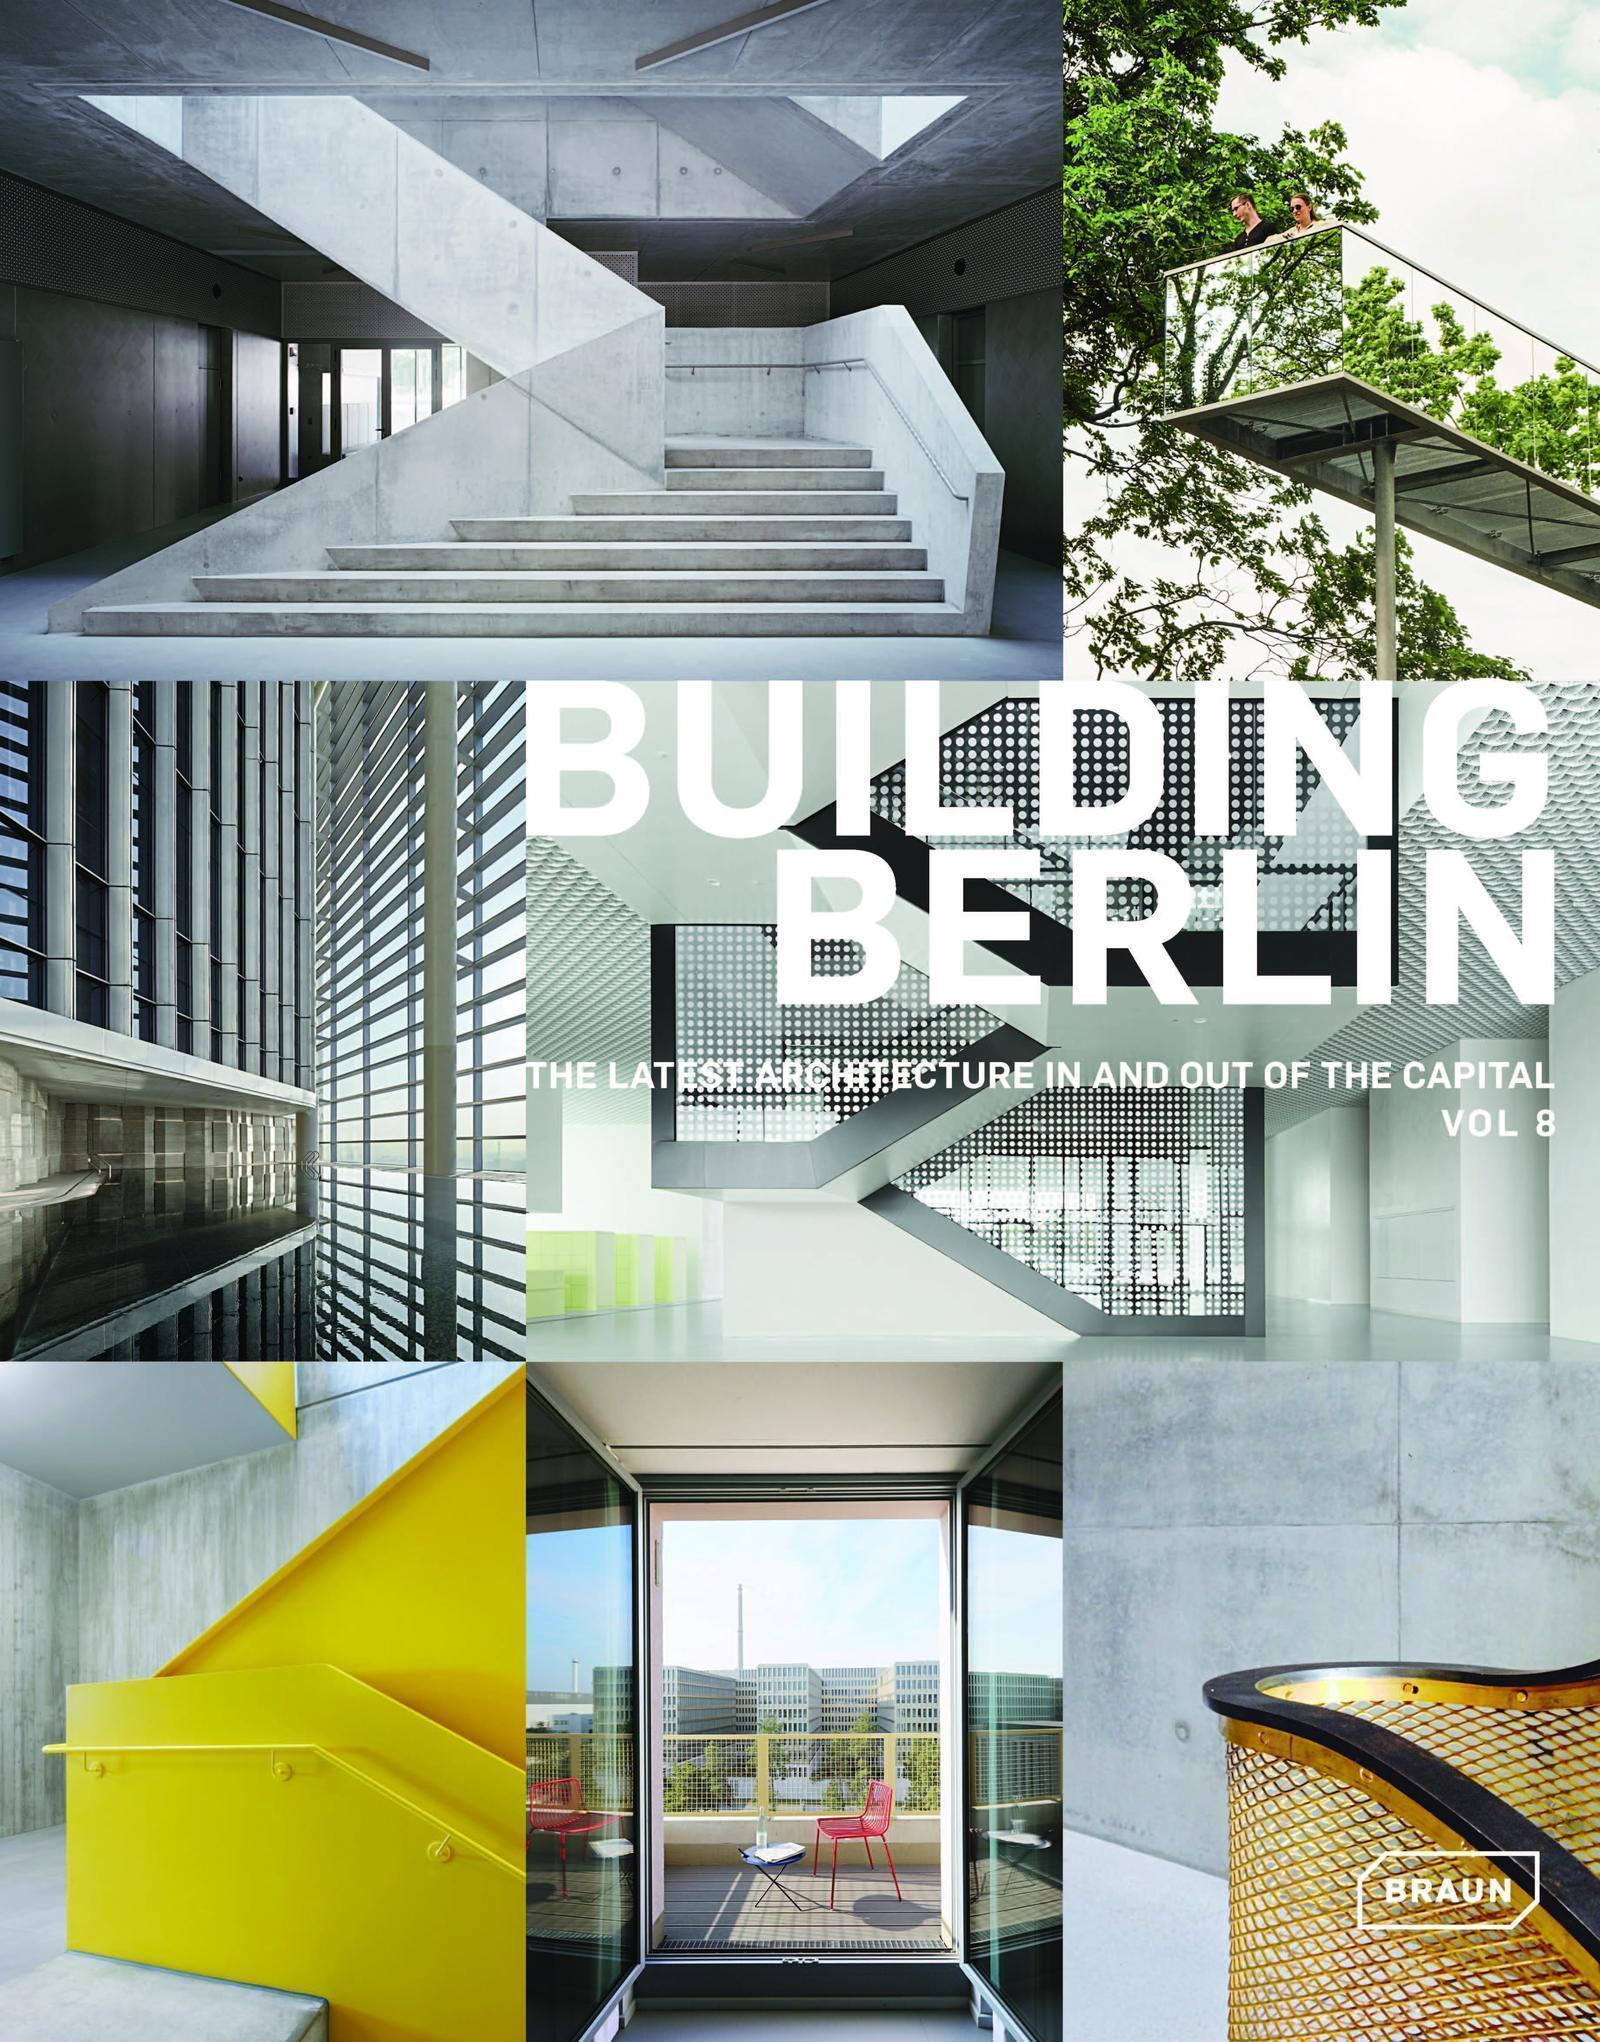 BUILDING BERLIN, VOL. 8 - THE LATEST ARCHITECTURE IN AND OUT OF THE CAPITAL